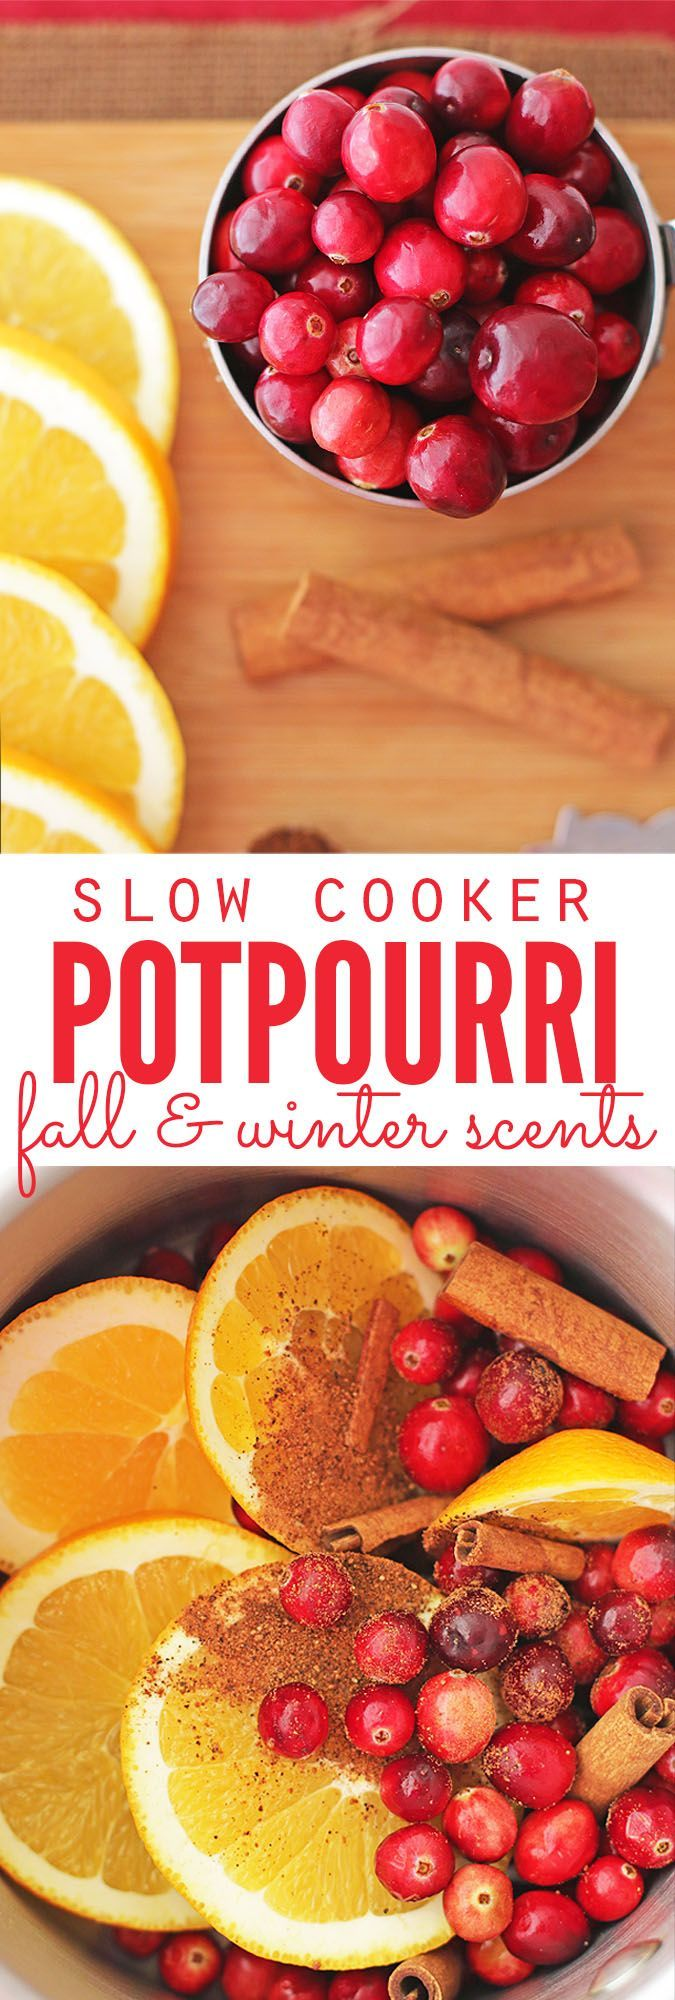 Stovetop Potpourri (Fall and Winter Scents)